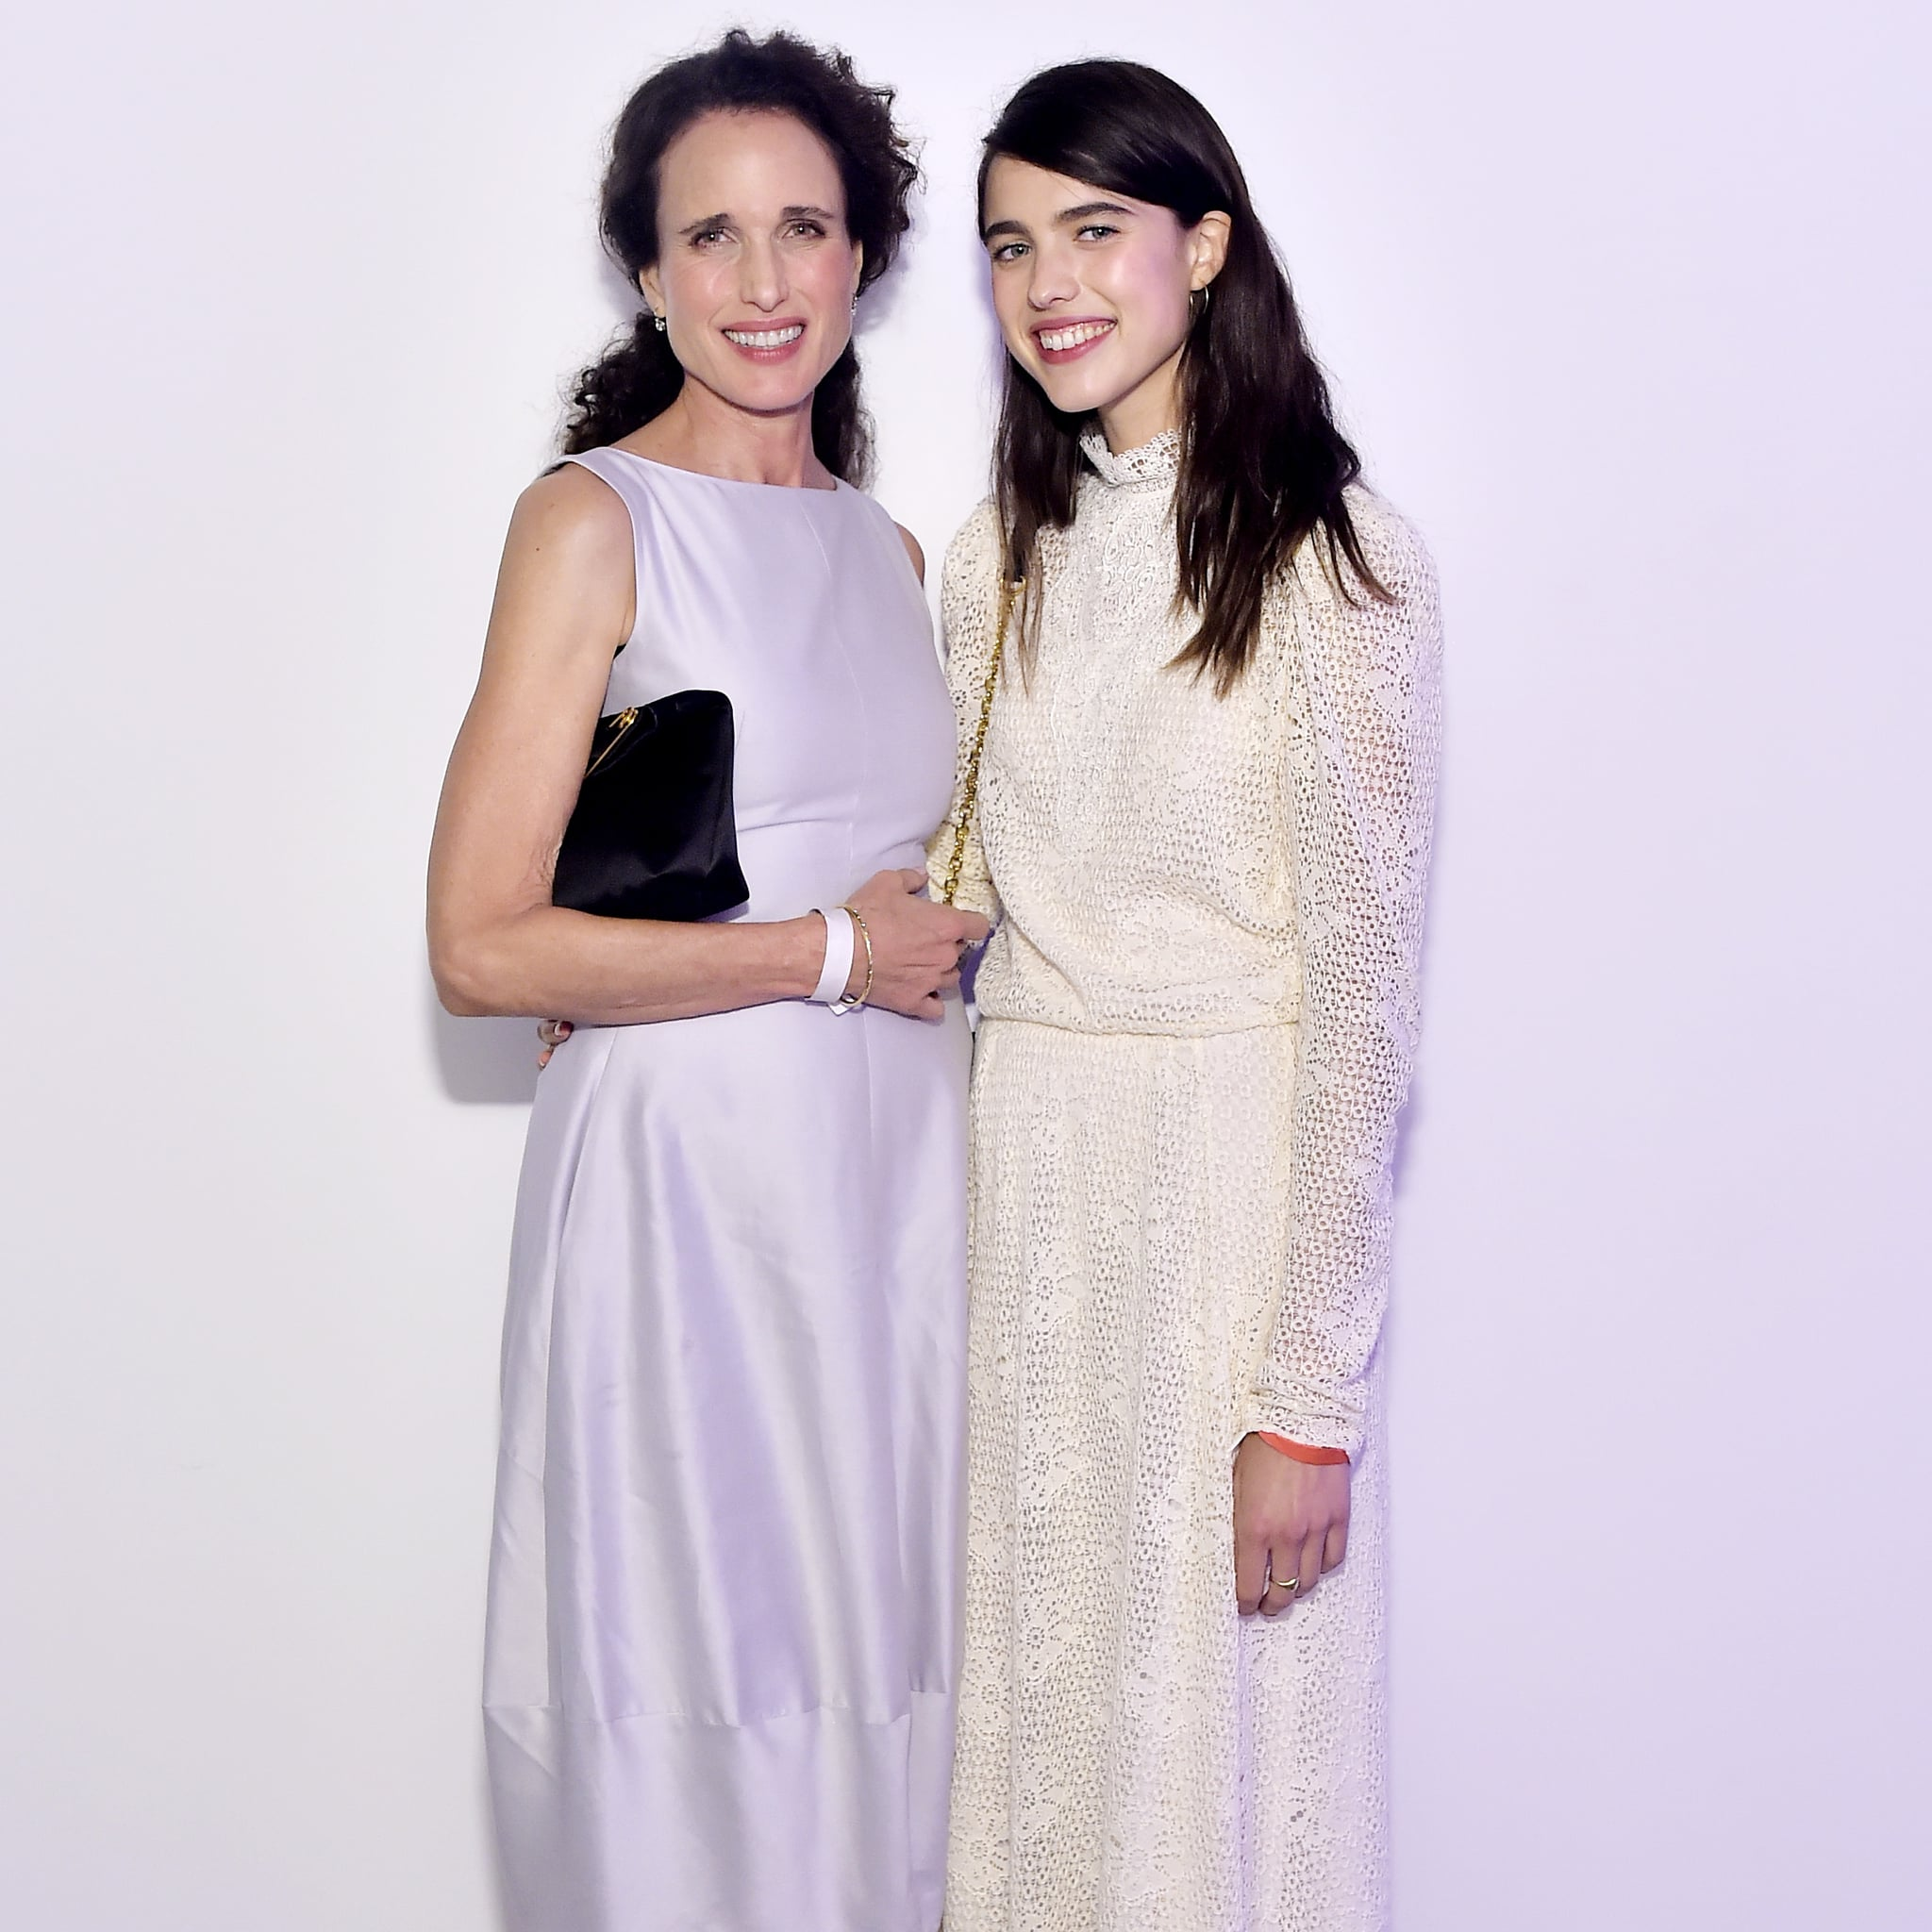 Pictures of Margaret Qualley and Andie MacDowell | POPSUGAR Celebrity Australia